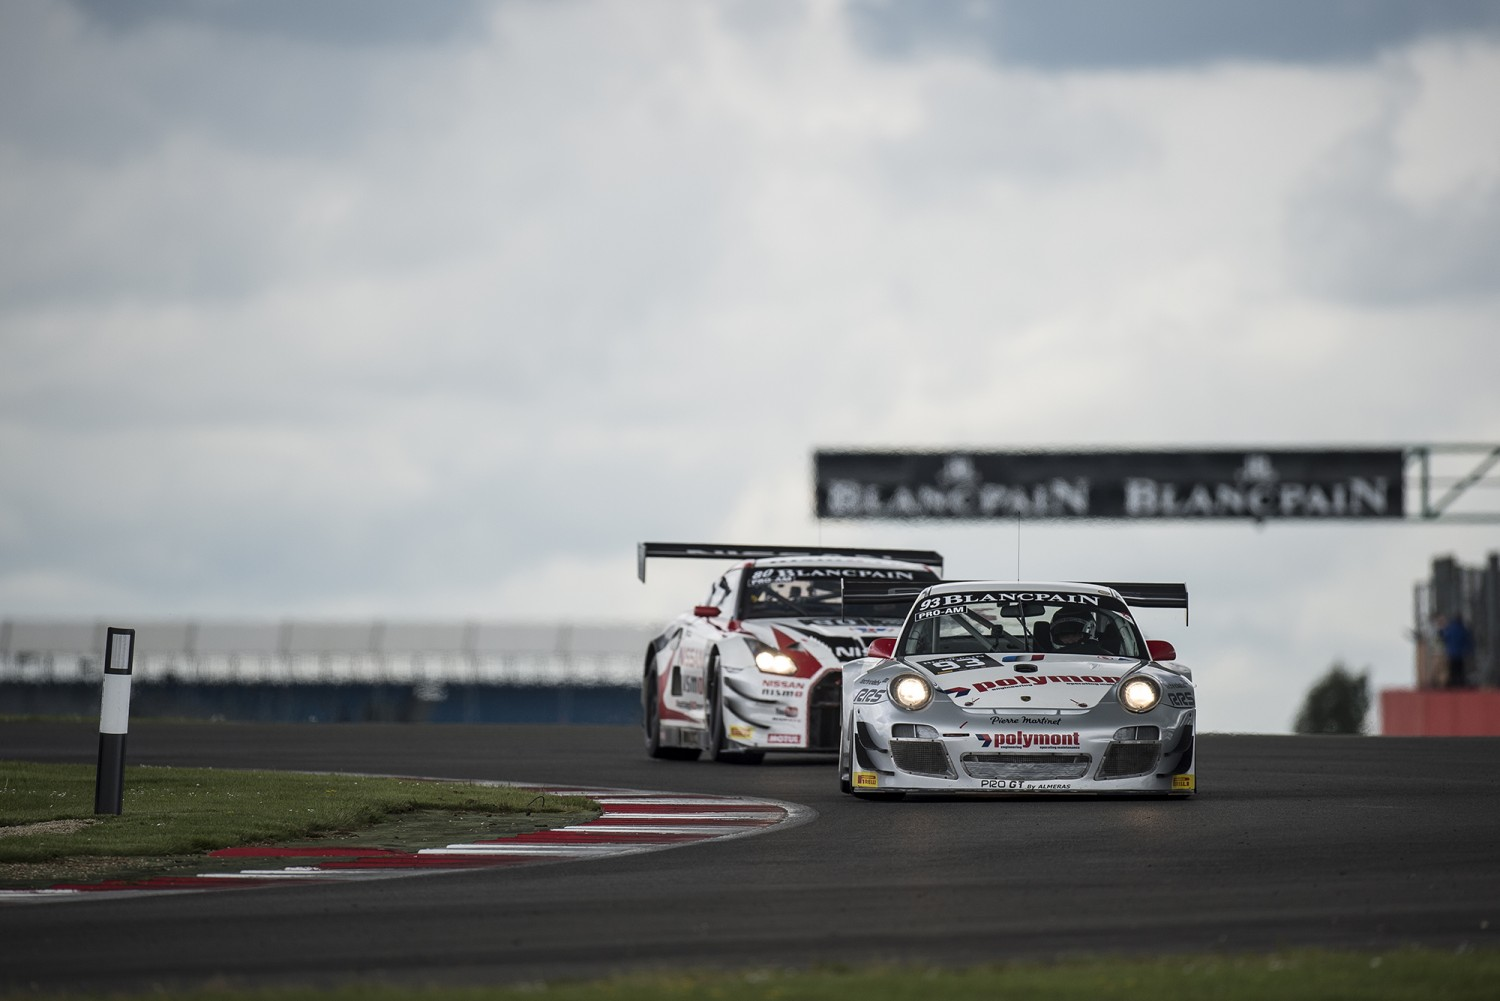 Franck Perera puts Pro GT by Almeras Porsche on pole